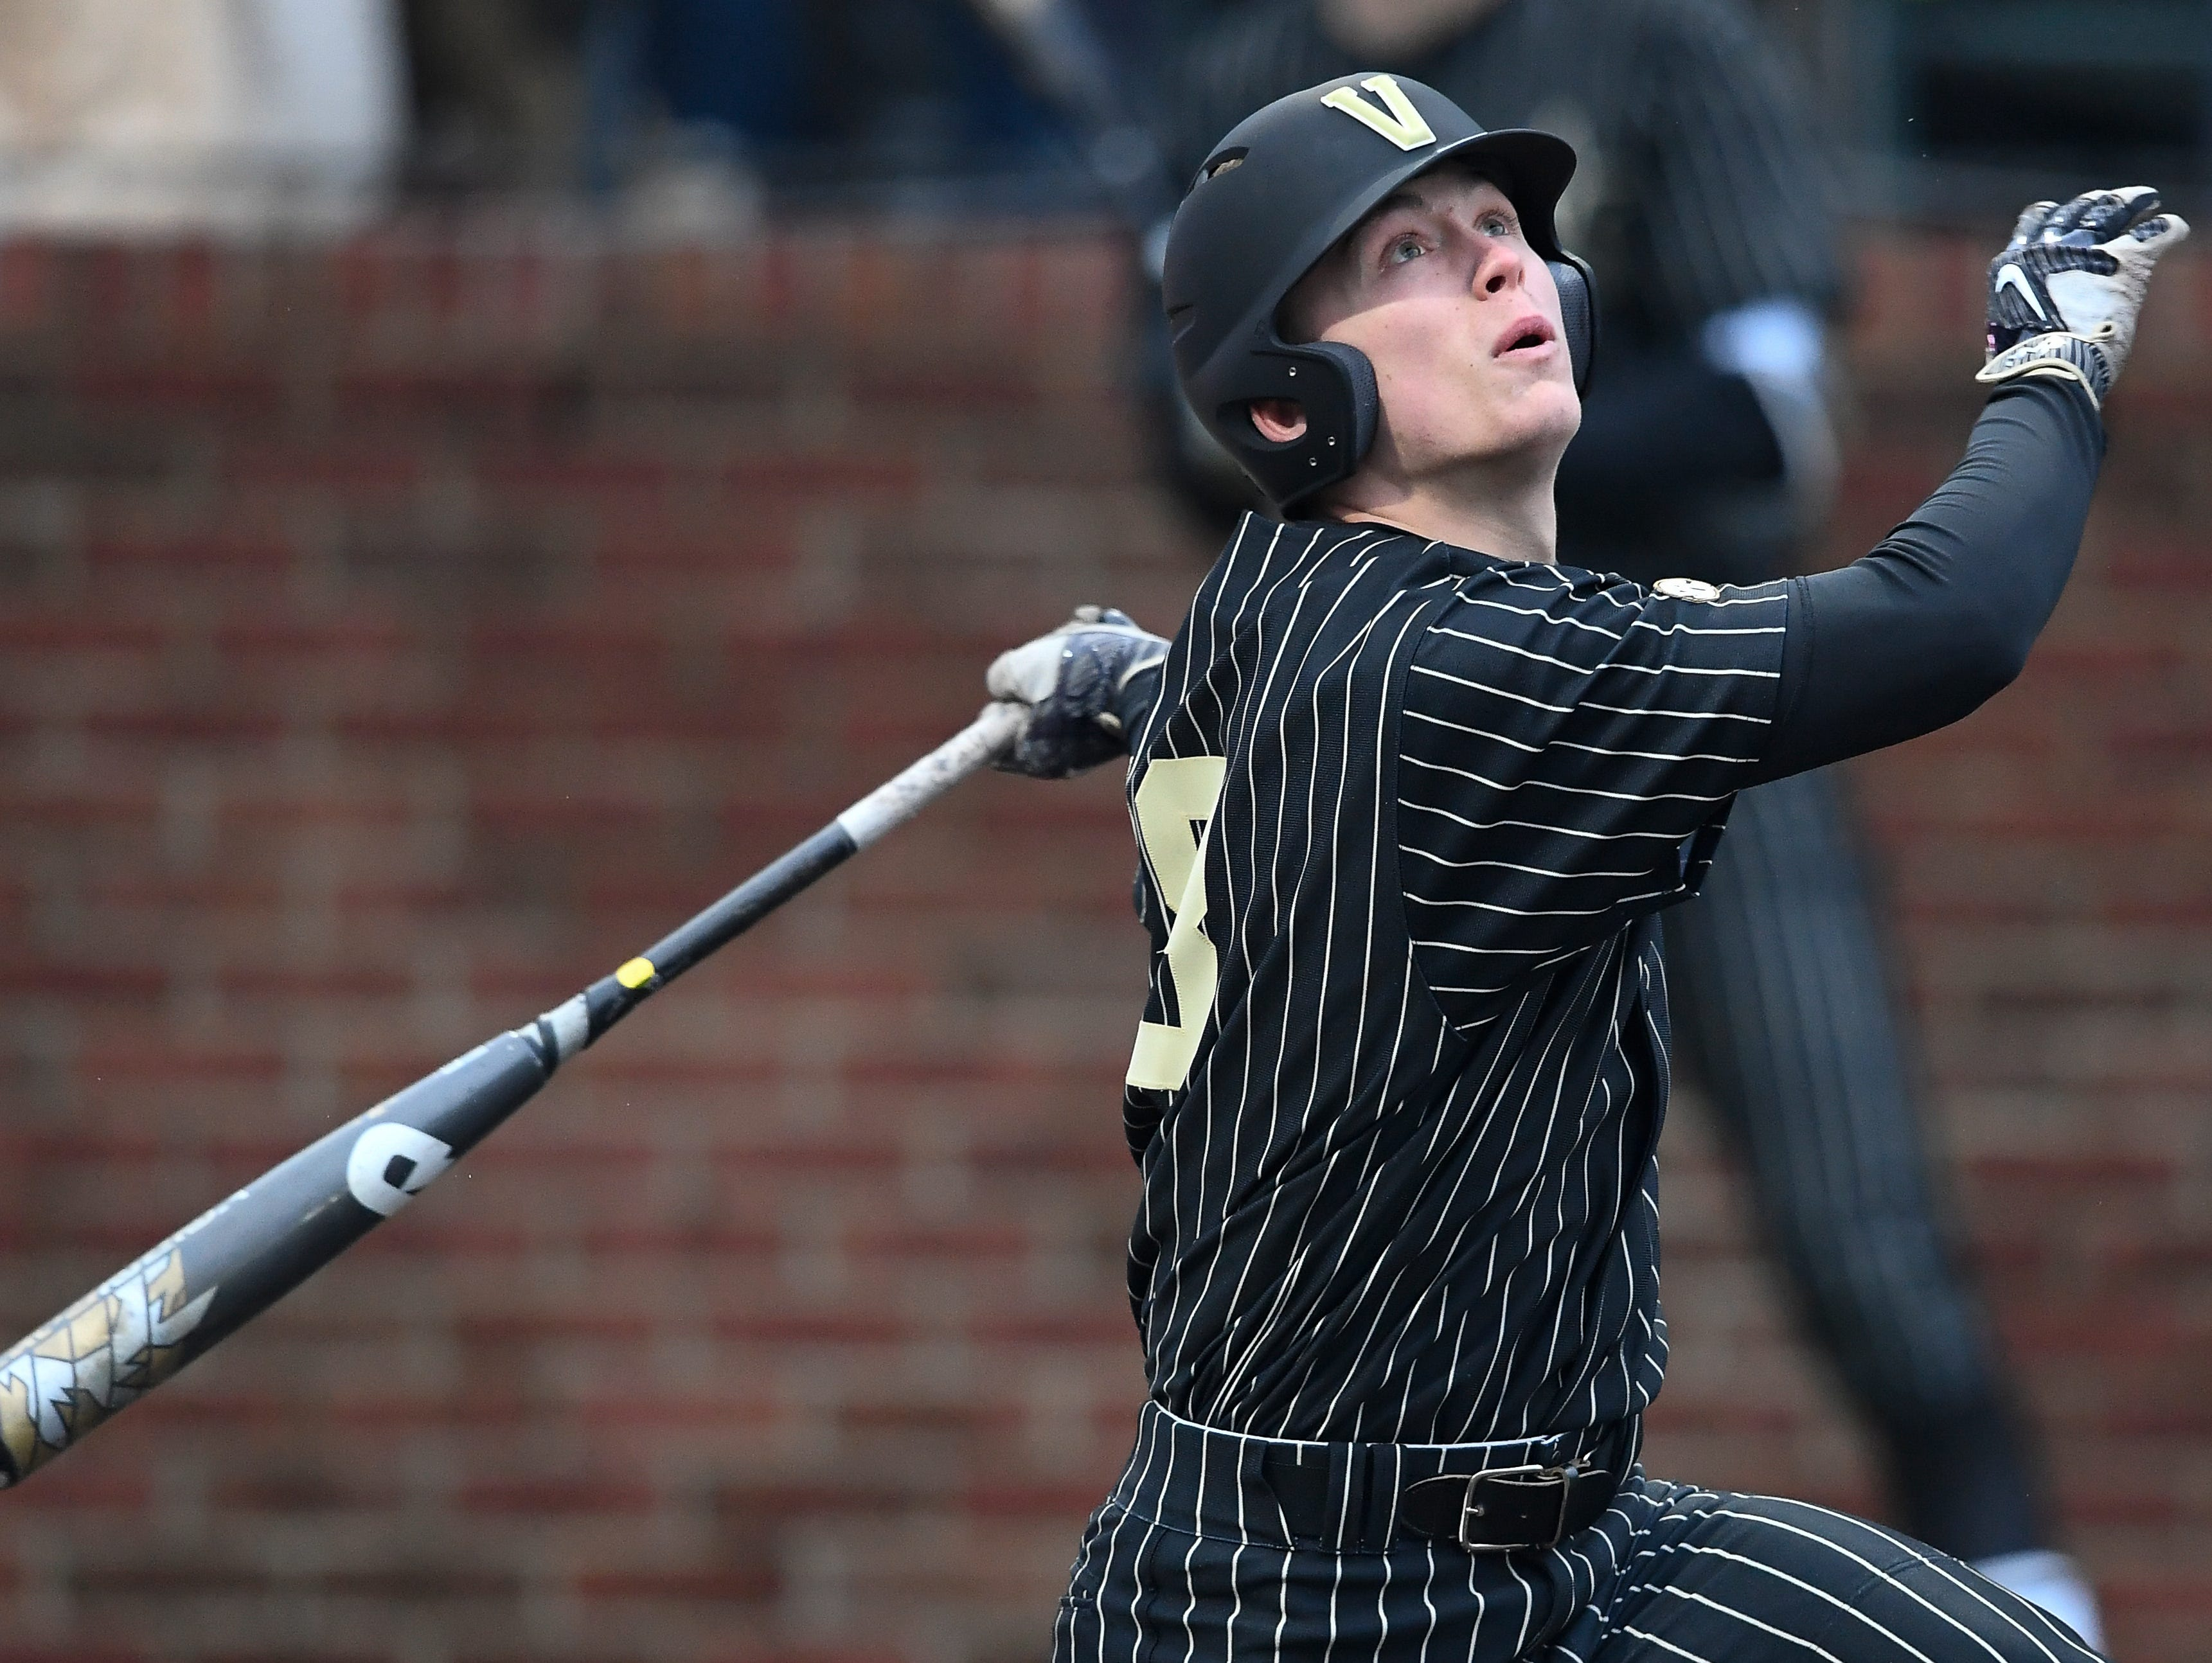 Vanderbilt outfielder Pat DeMarco (18) looks to the sky after hitting the ball during the game against Duke Hawkins Field Friday, Feb. 16, 2018 in Nashville, Tenn.